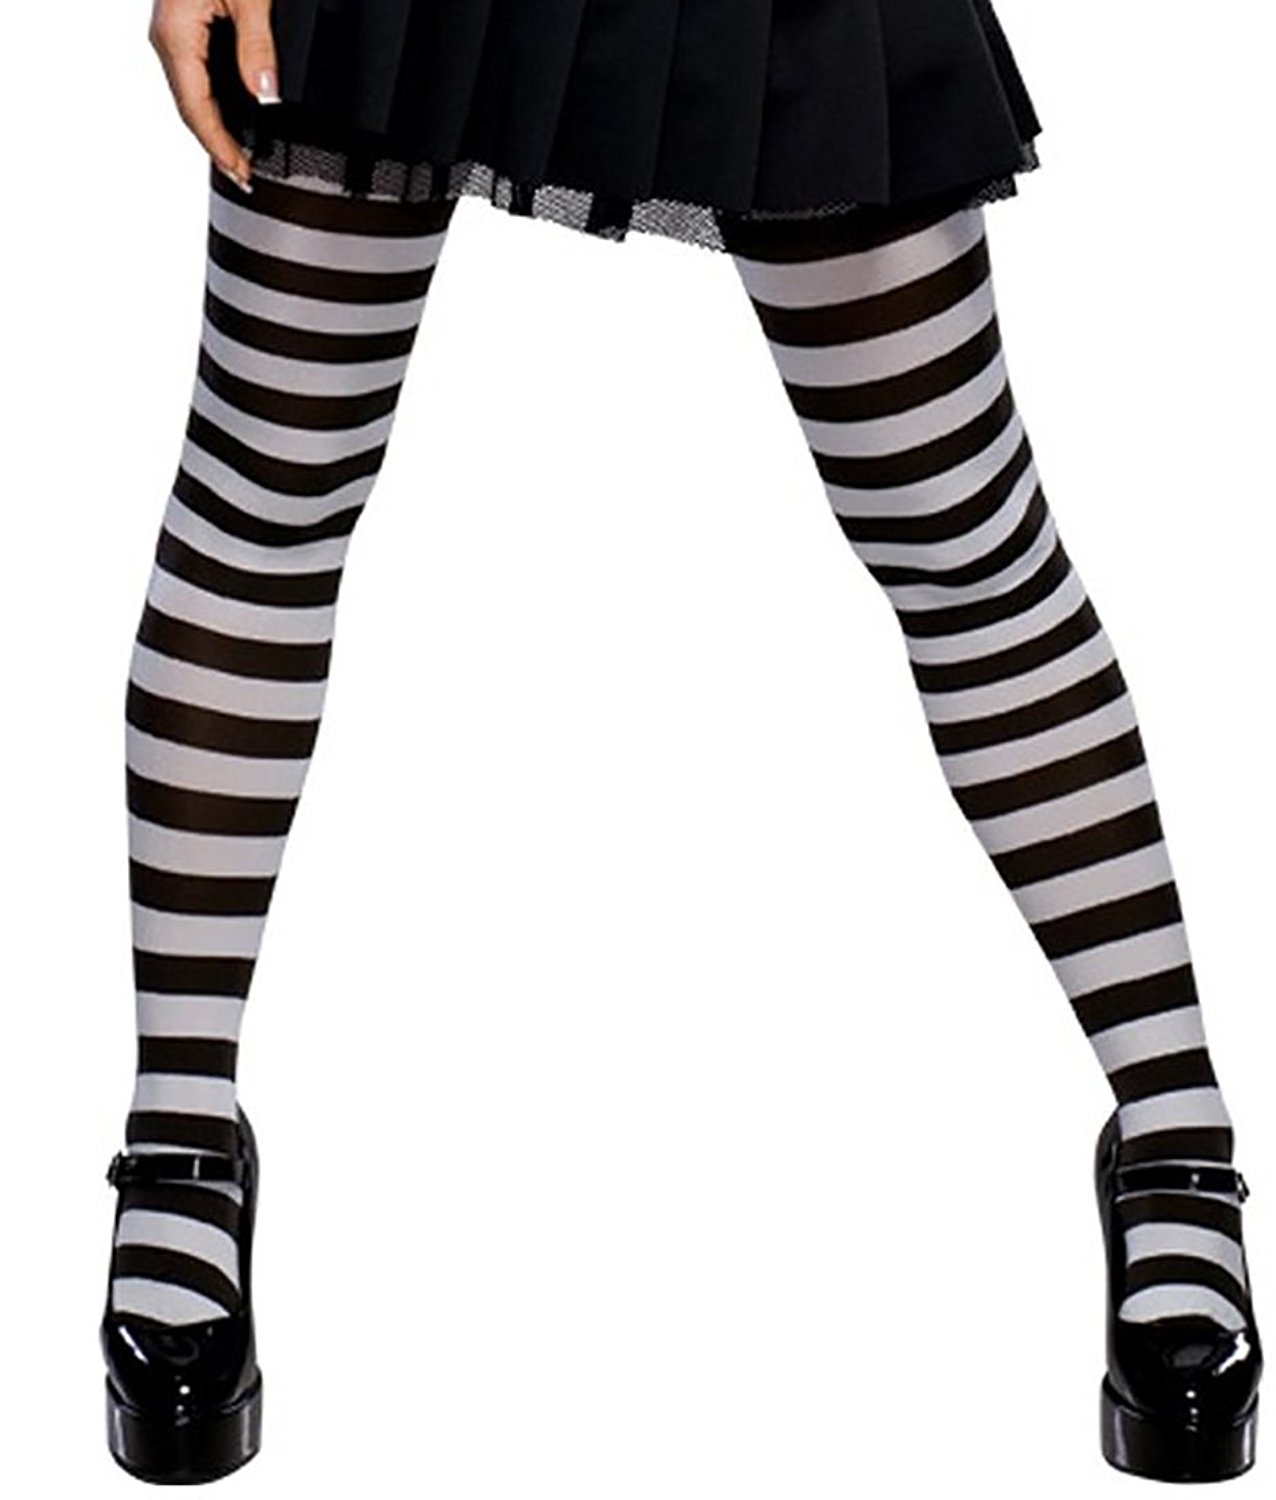 71165d2b278c8 Get Quotations · Women's Black and White Striped Tights Black White Striped  Tights Emo Tights